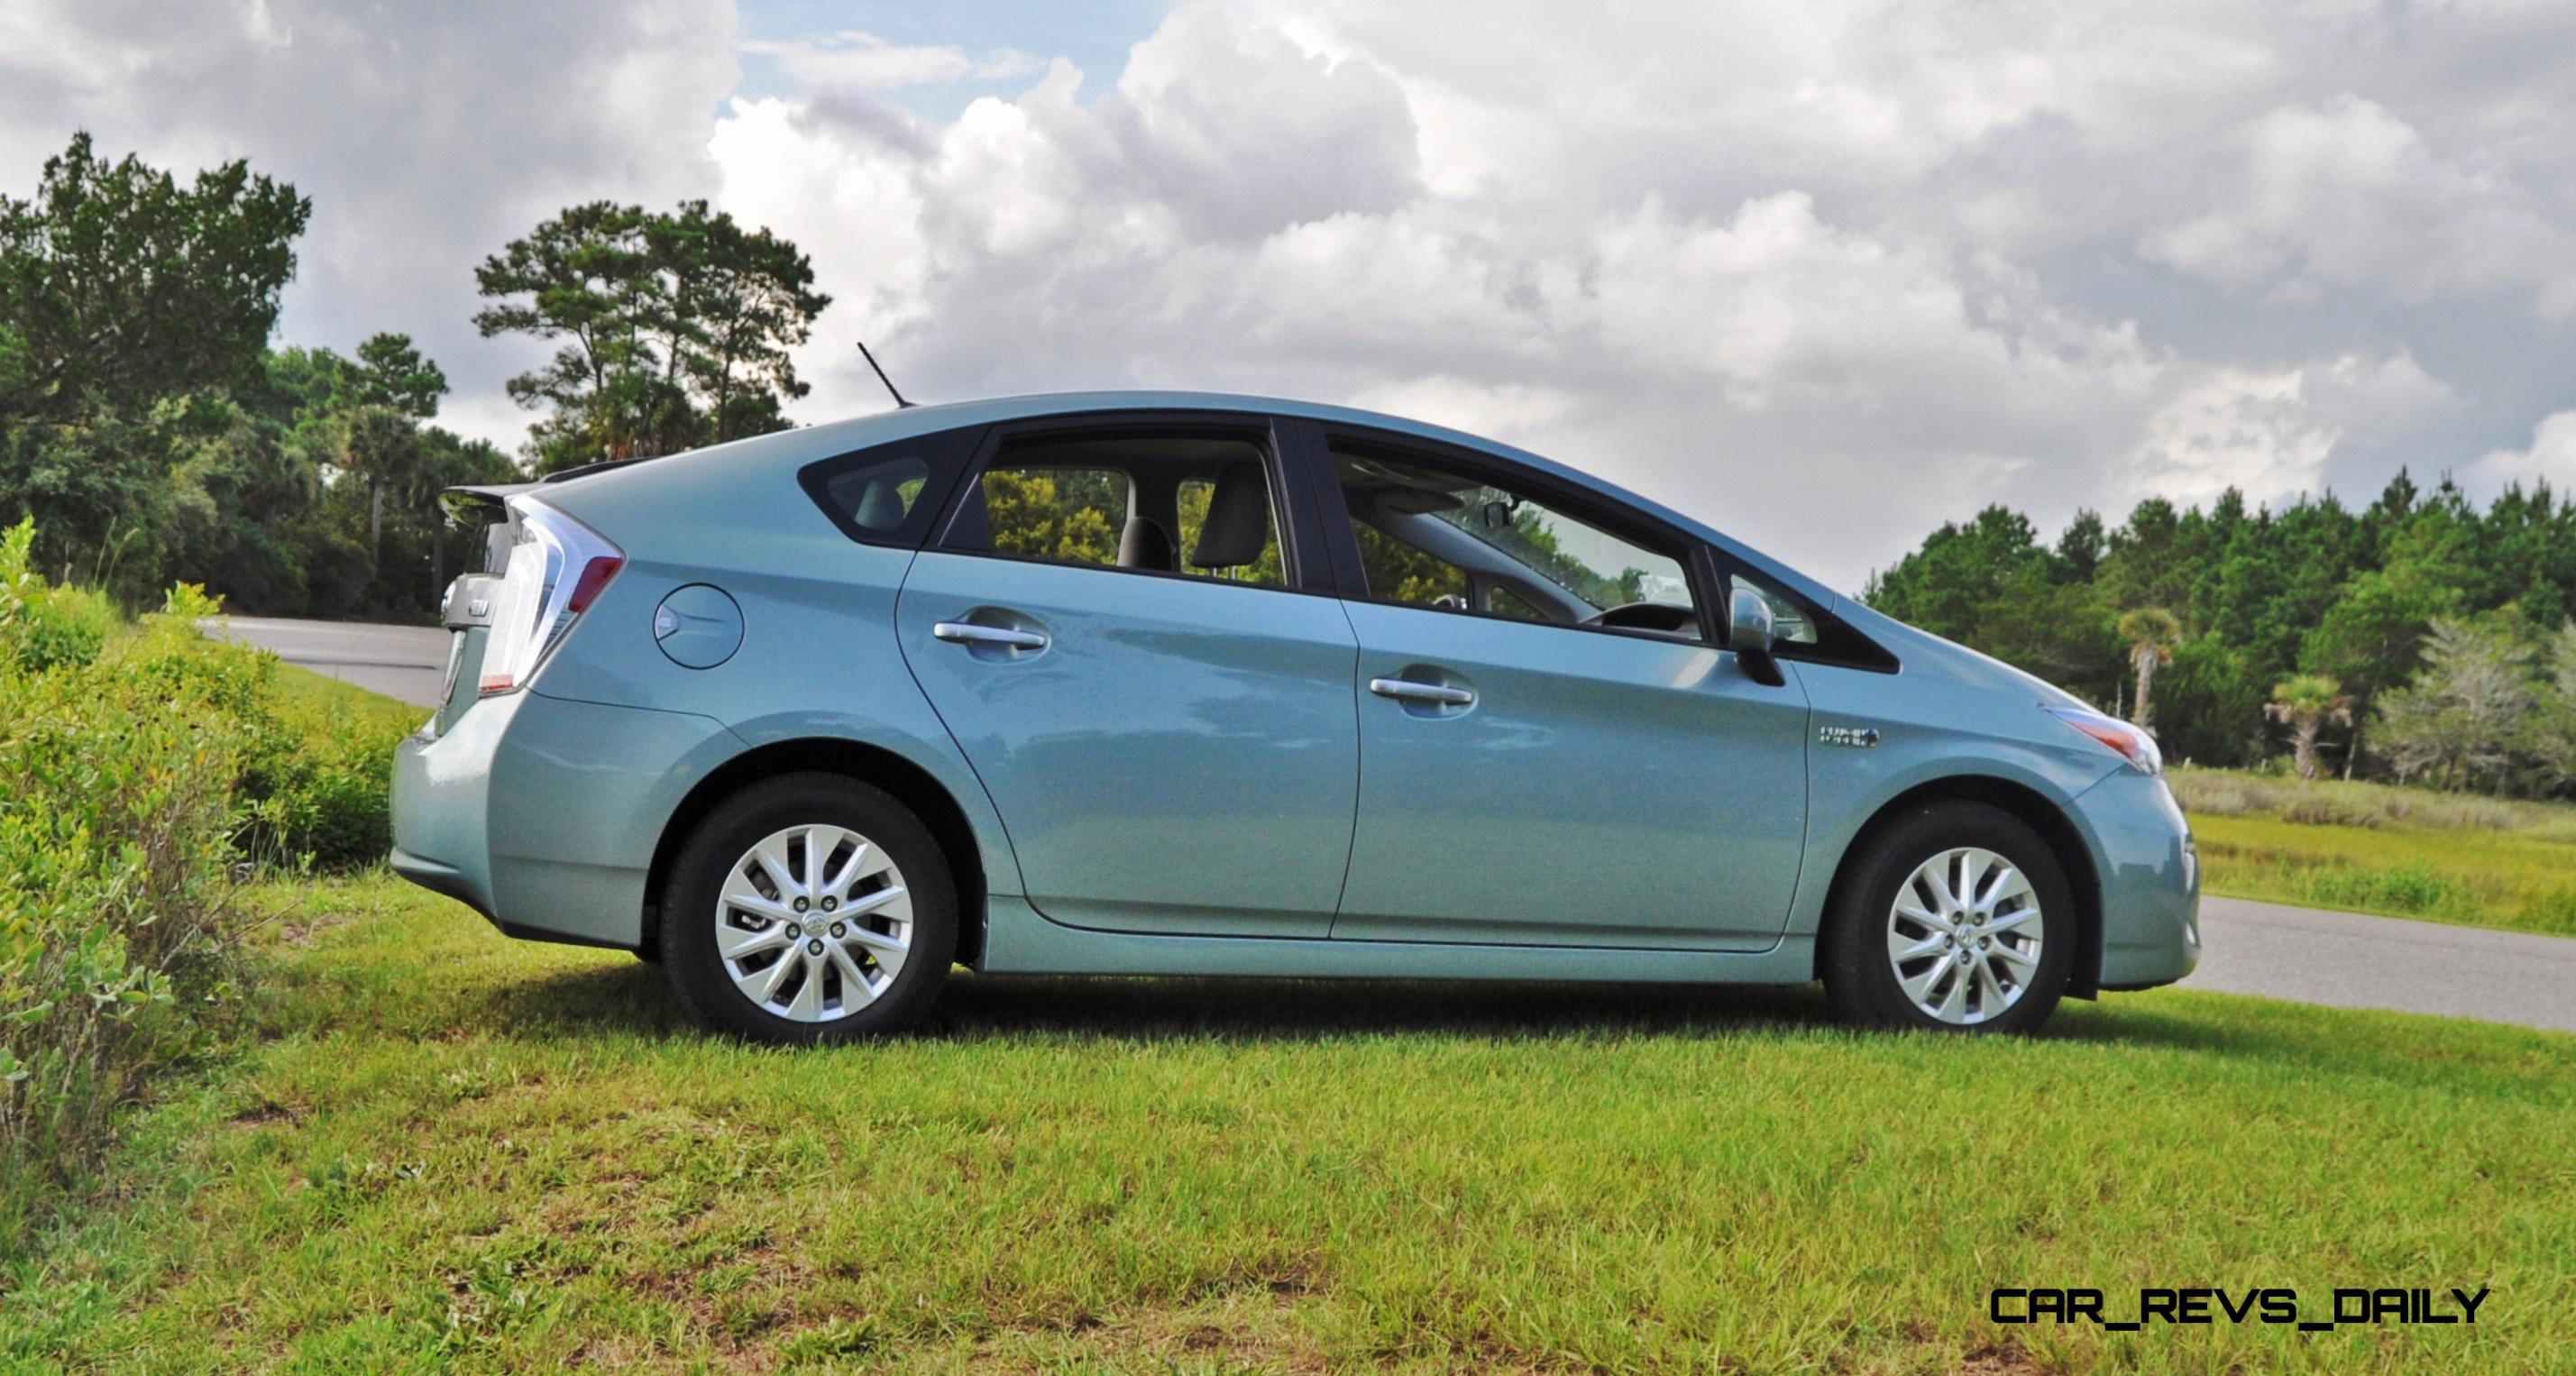 road test review 2014 toyota prius plug in is quietly excellent more iso tank than eco warrior. Black Bedroom Furniture Sets. Home Design Ideas